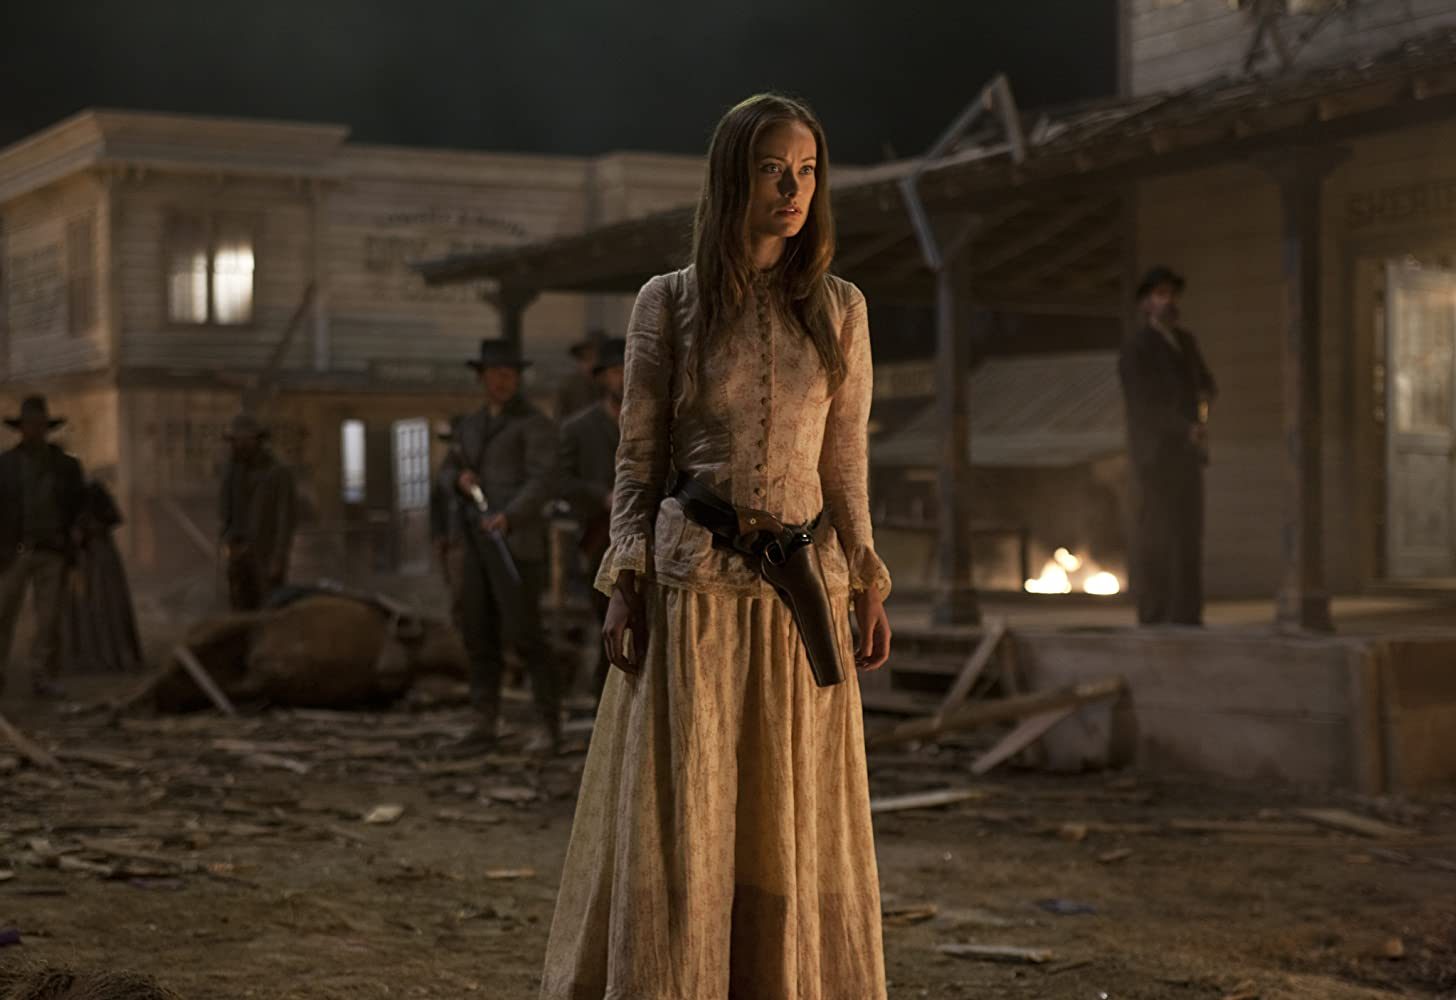 Olivia Wilde in Cowboys & Aliens (2011)